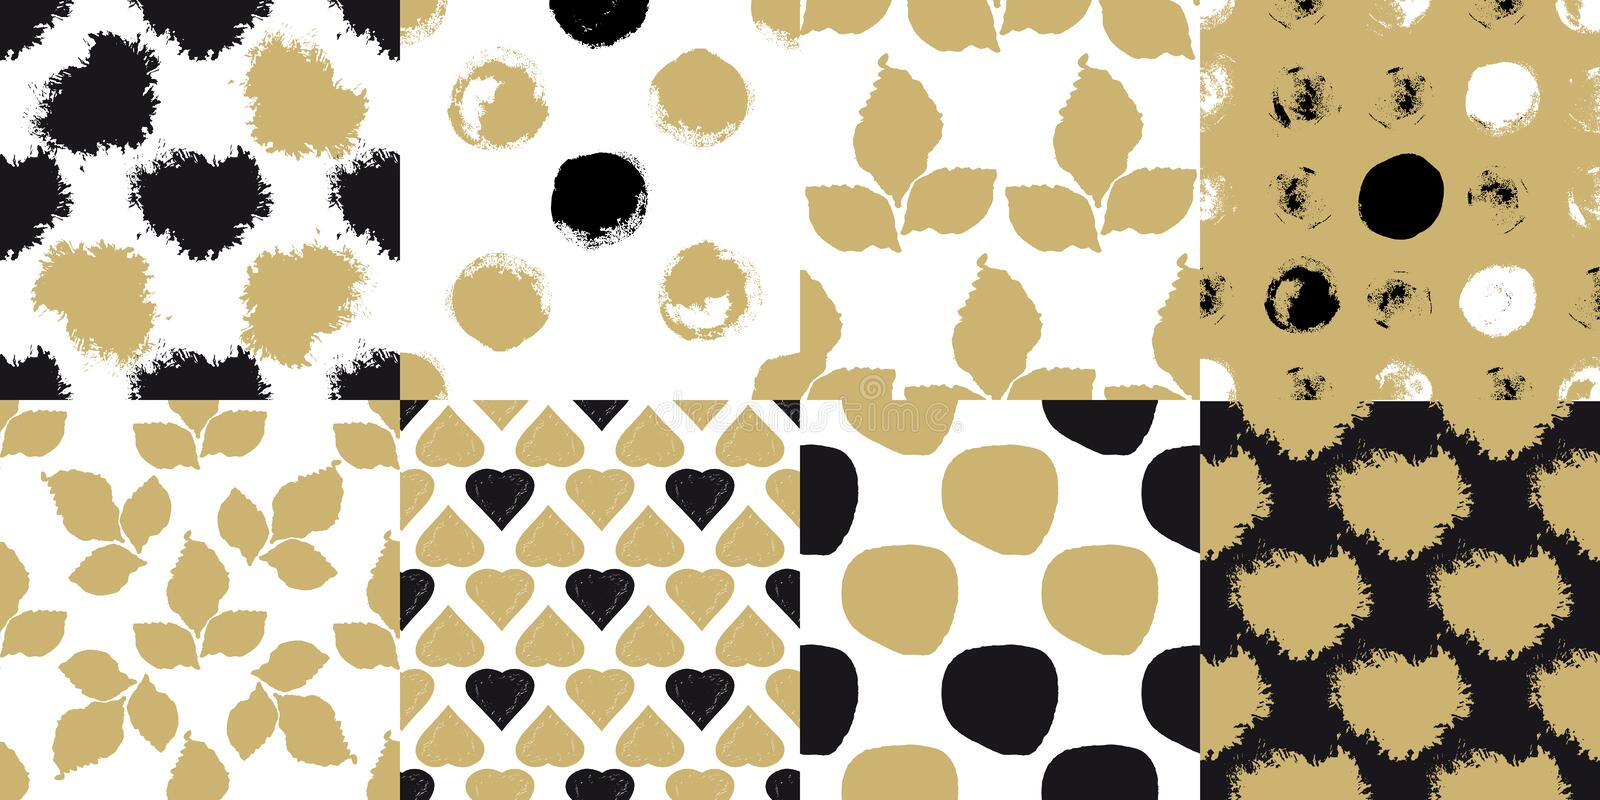 Decorative seamless patterns. Set with brush drawn circles, hearts, leaves and blobs on golden and white background. Abstract acrylic for creative design stock illustration